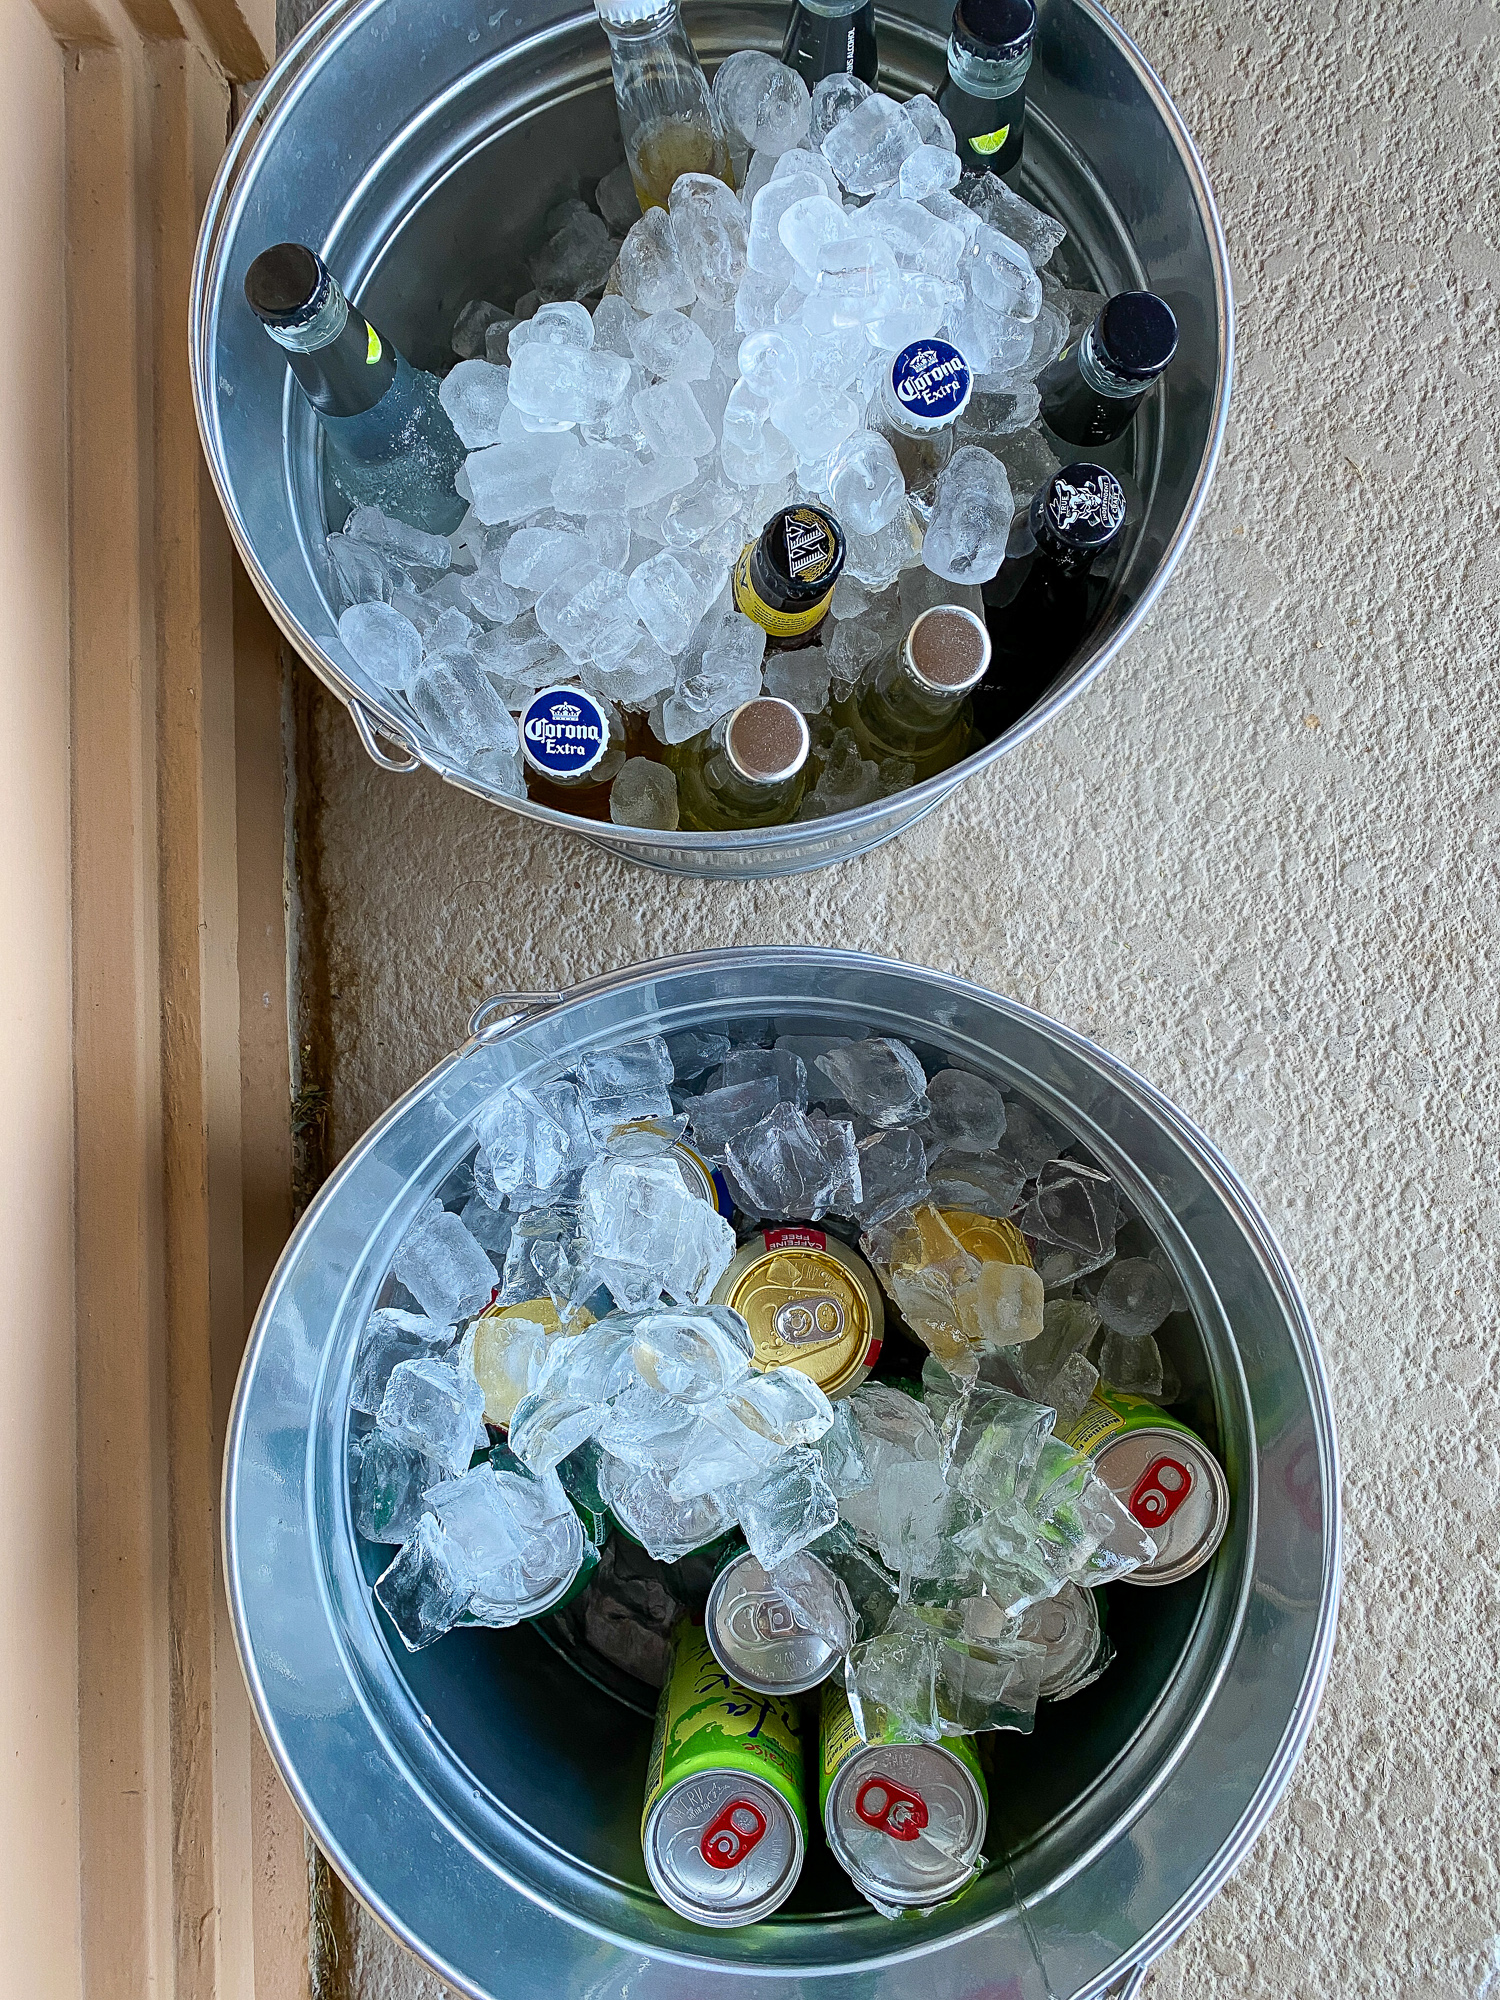 Serve one bucket of alcoholic beverages and one bucket of non-alcoholic drinks at your party